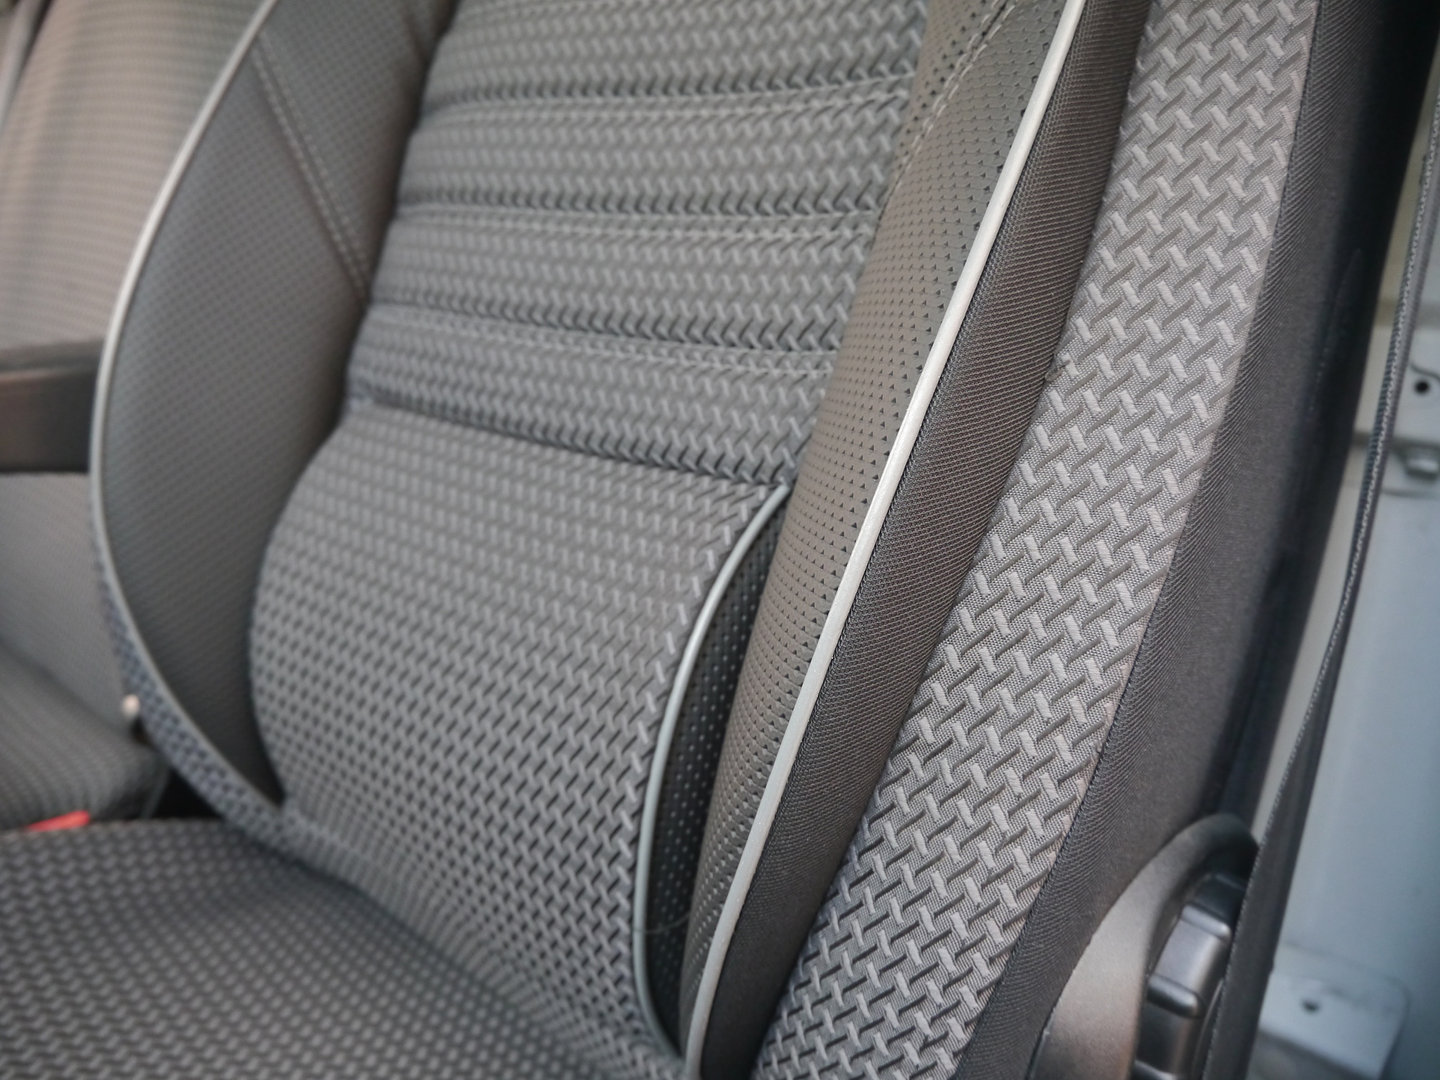 Stupendous Car Seat Covers Vw T5 Caravelle Rhd 5 Seater 1 1 And 3 Person Bench Creativecarmelina Interior Chair Design Creativecarmelinacom